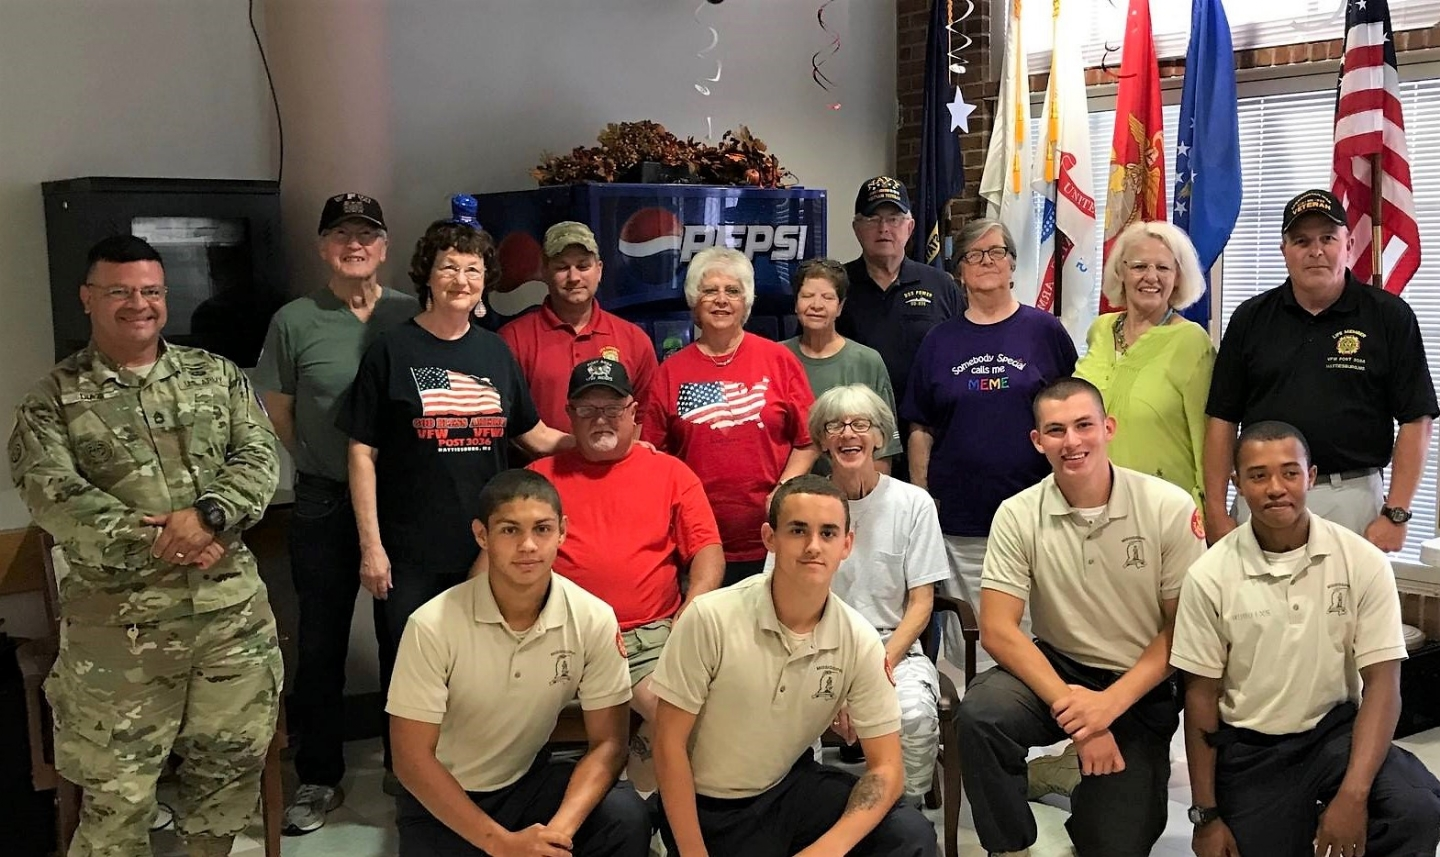 Once a month VFW Post 3036 goes and plays Bingo and provides snacks and refreshments to the Veterans that are living at the State Veterans Home located in Collins. Mississippi.